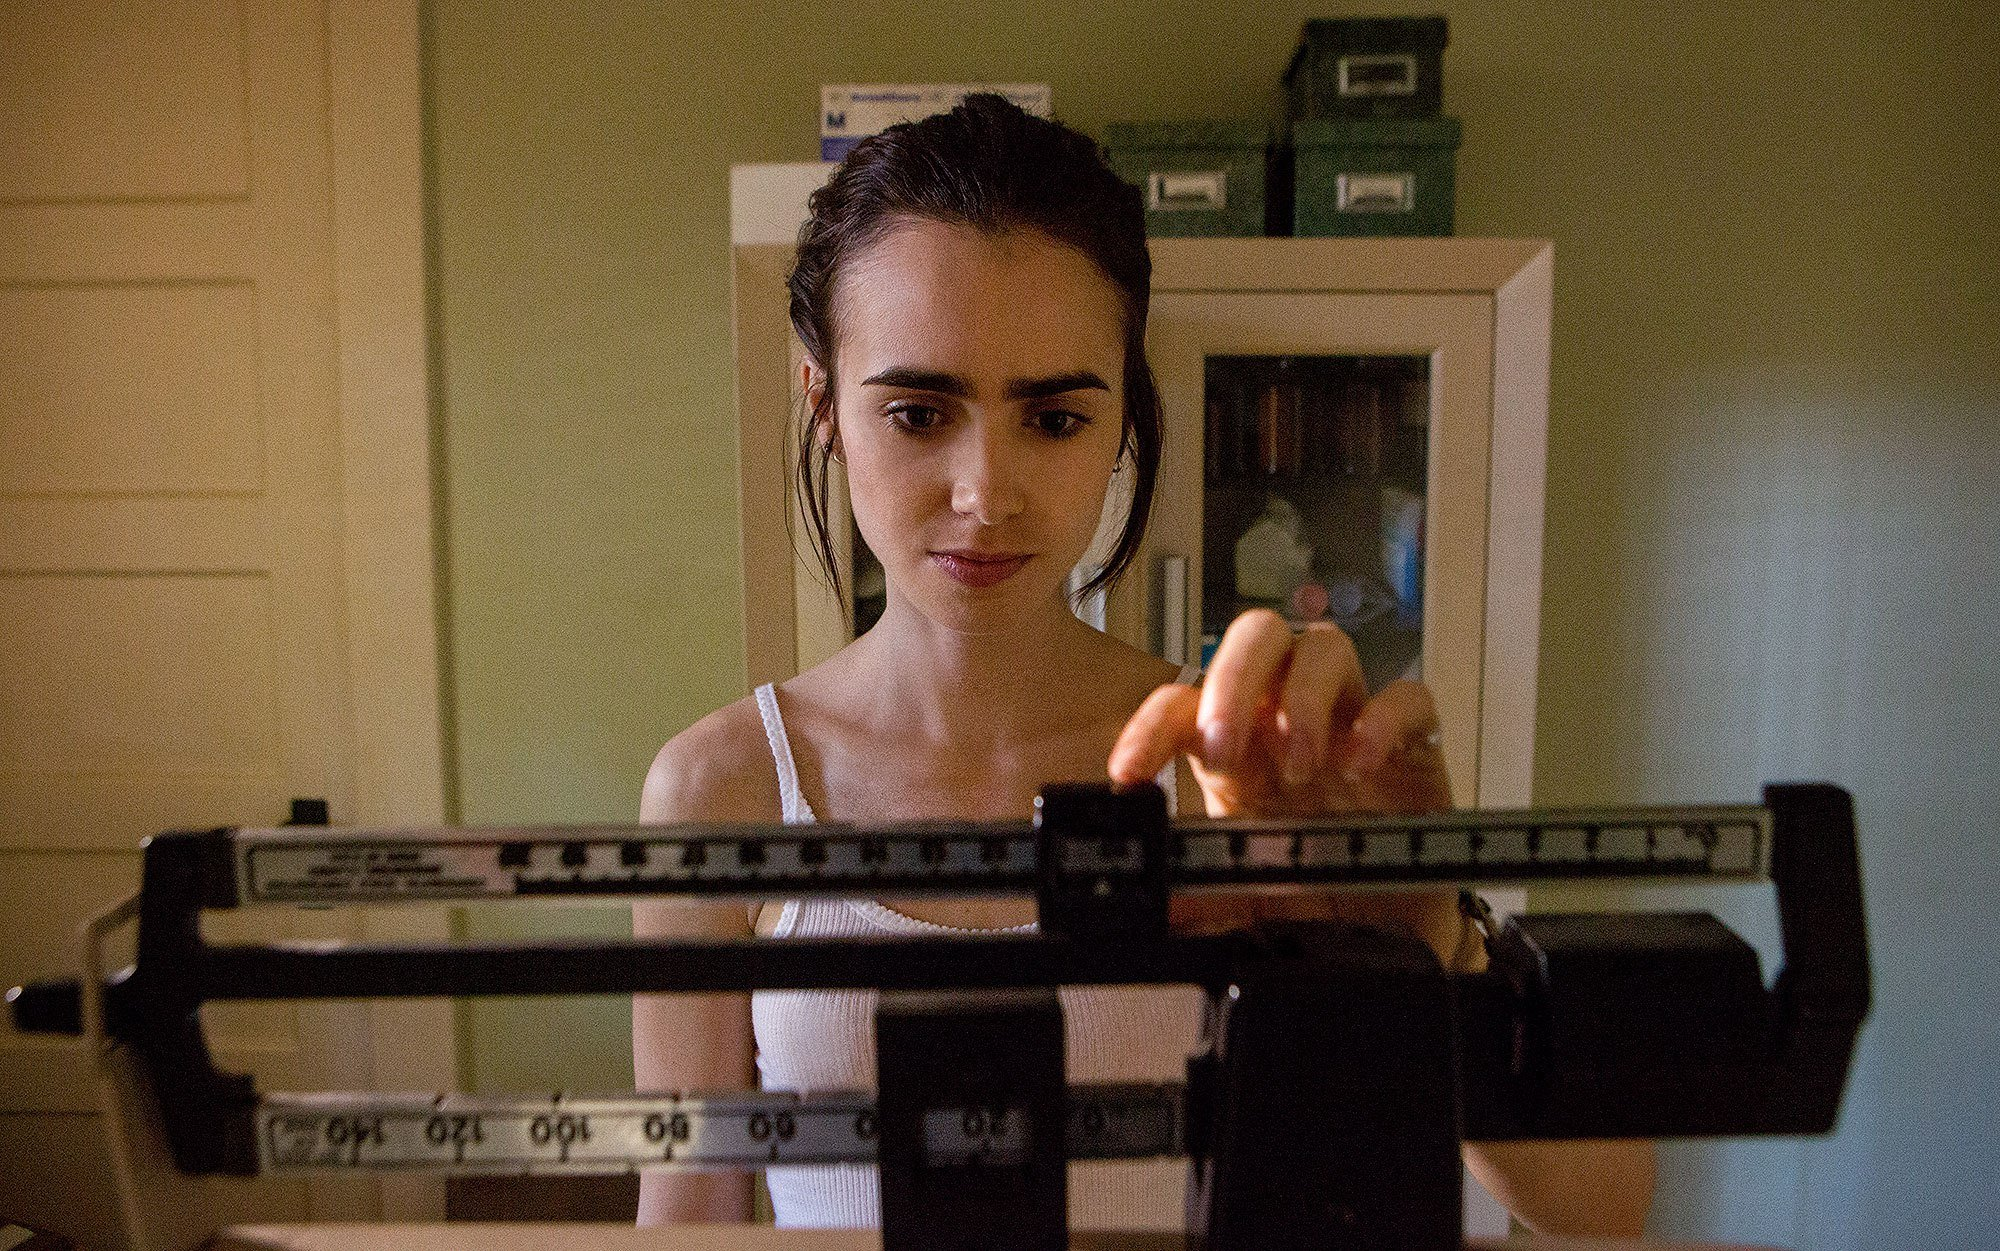 """Leaders in the eating disorder community say that the new film """"To theBone"""" is helping increase awareness and conversations around the illness, but some worry about its potential effects. (Netflix)"""